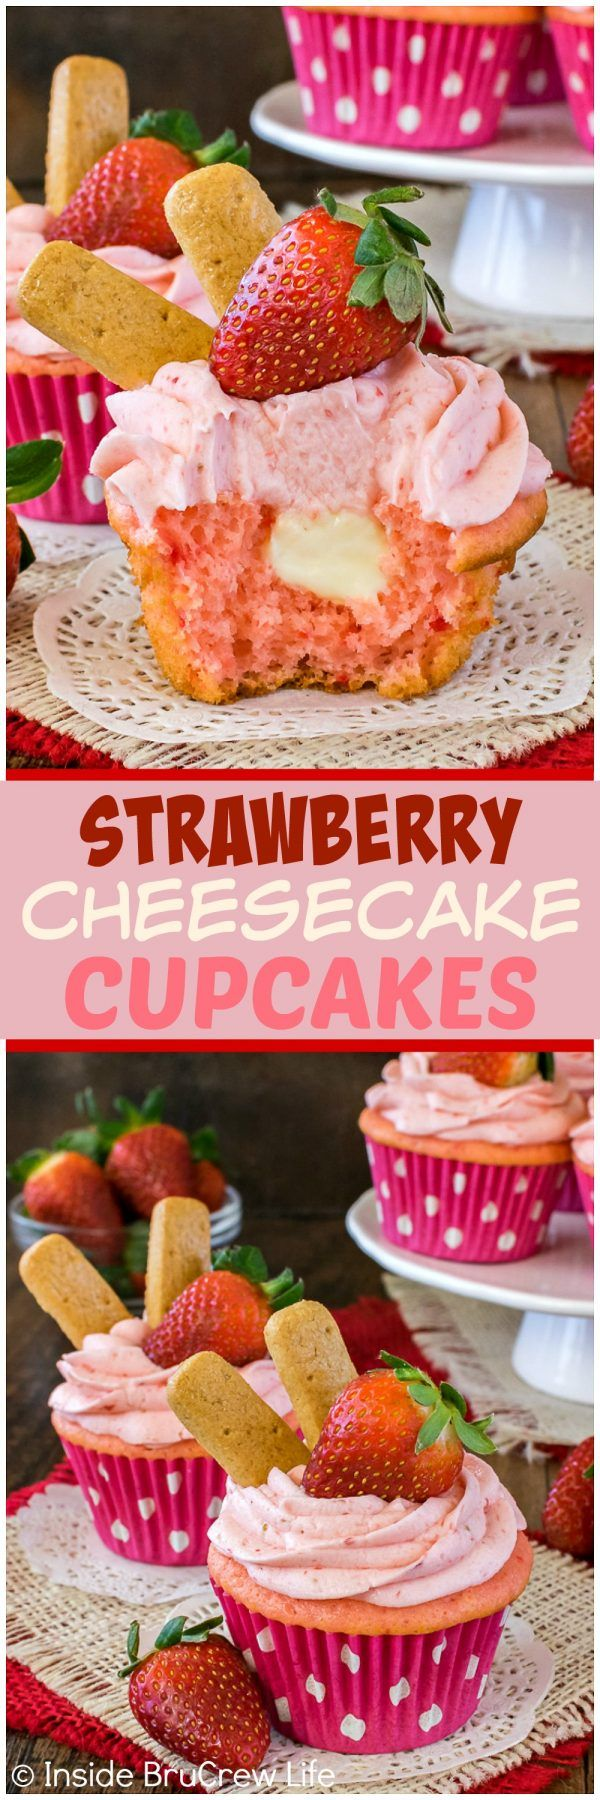 Strawberry Cheesecake Cupcakes - these easy cupcakes have a hidden no bake cheesecake filling and fresh strawberry frosting. Awesome cupcake recipe for any spring party!!!: